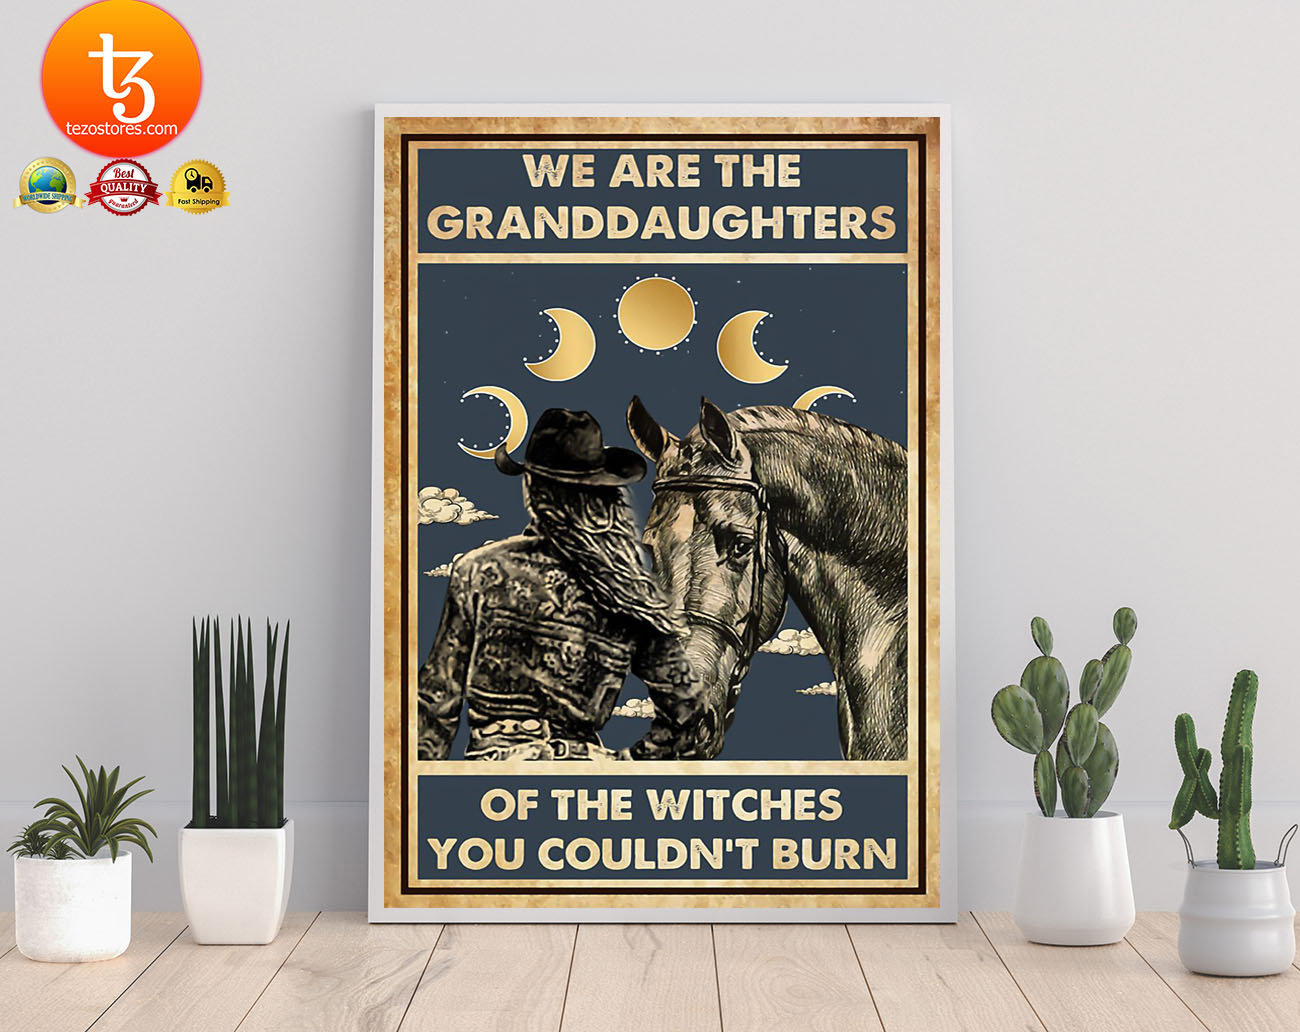 We are the granddaughters of the withches you coundn't burn poster 21